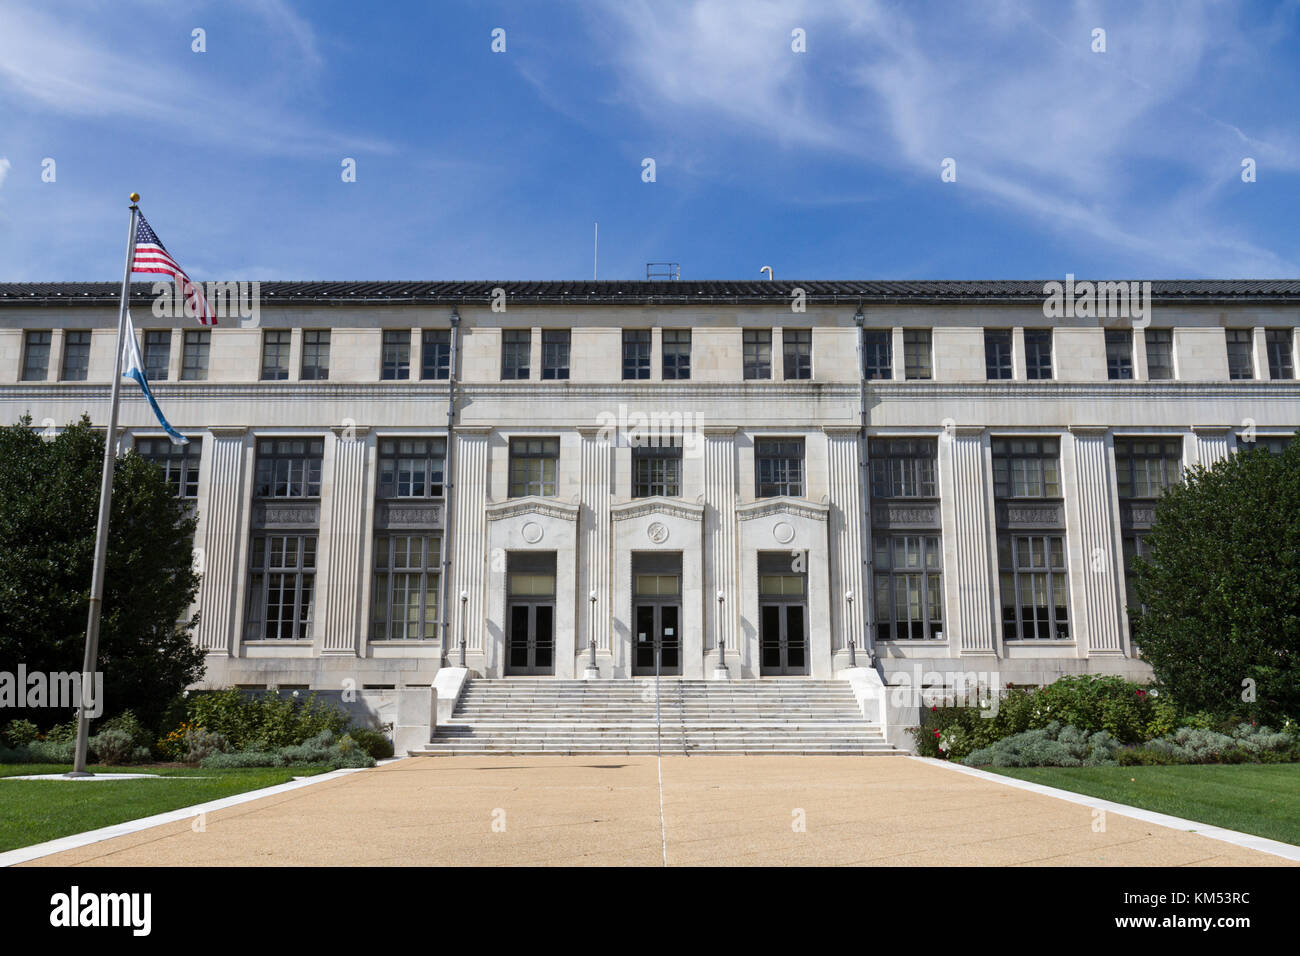 The South Interior Building (Dept Of The Interior), 1925 Constitution Ave  NW, Washington DC, United States.